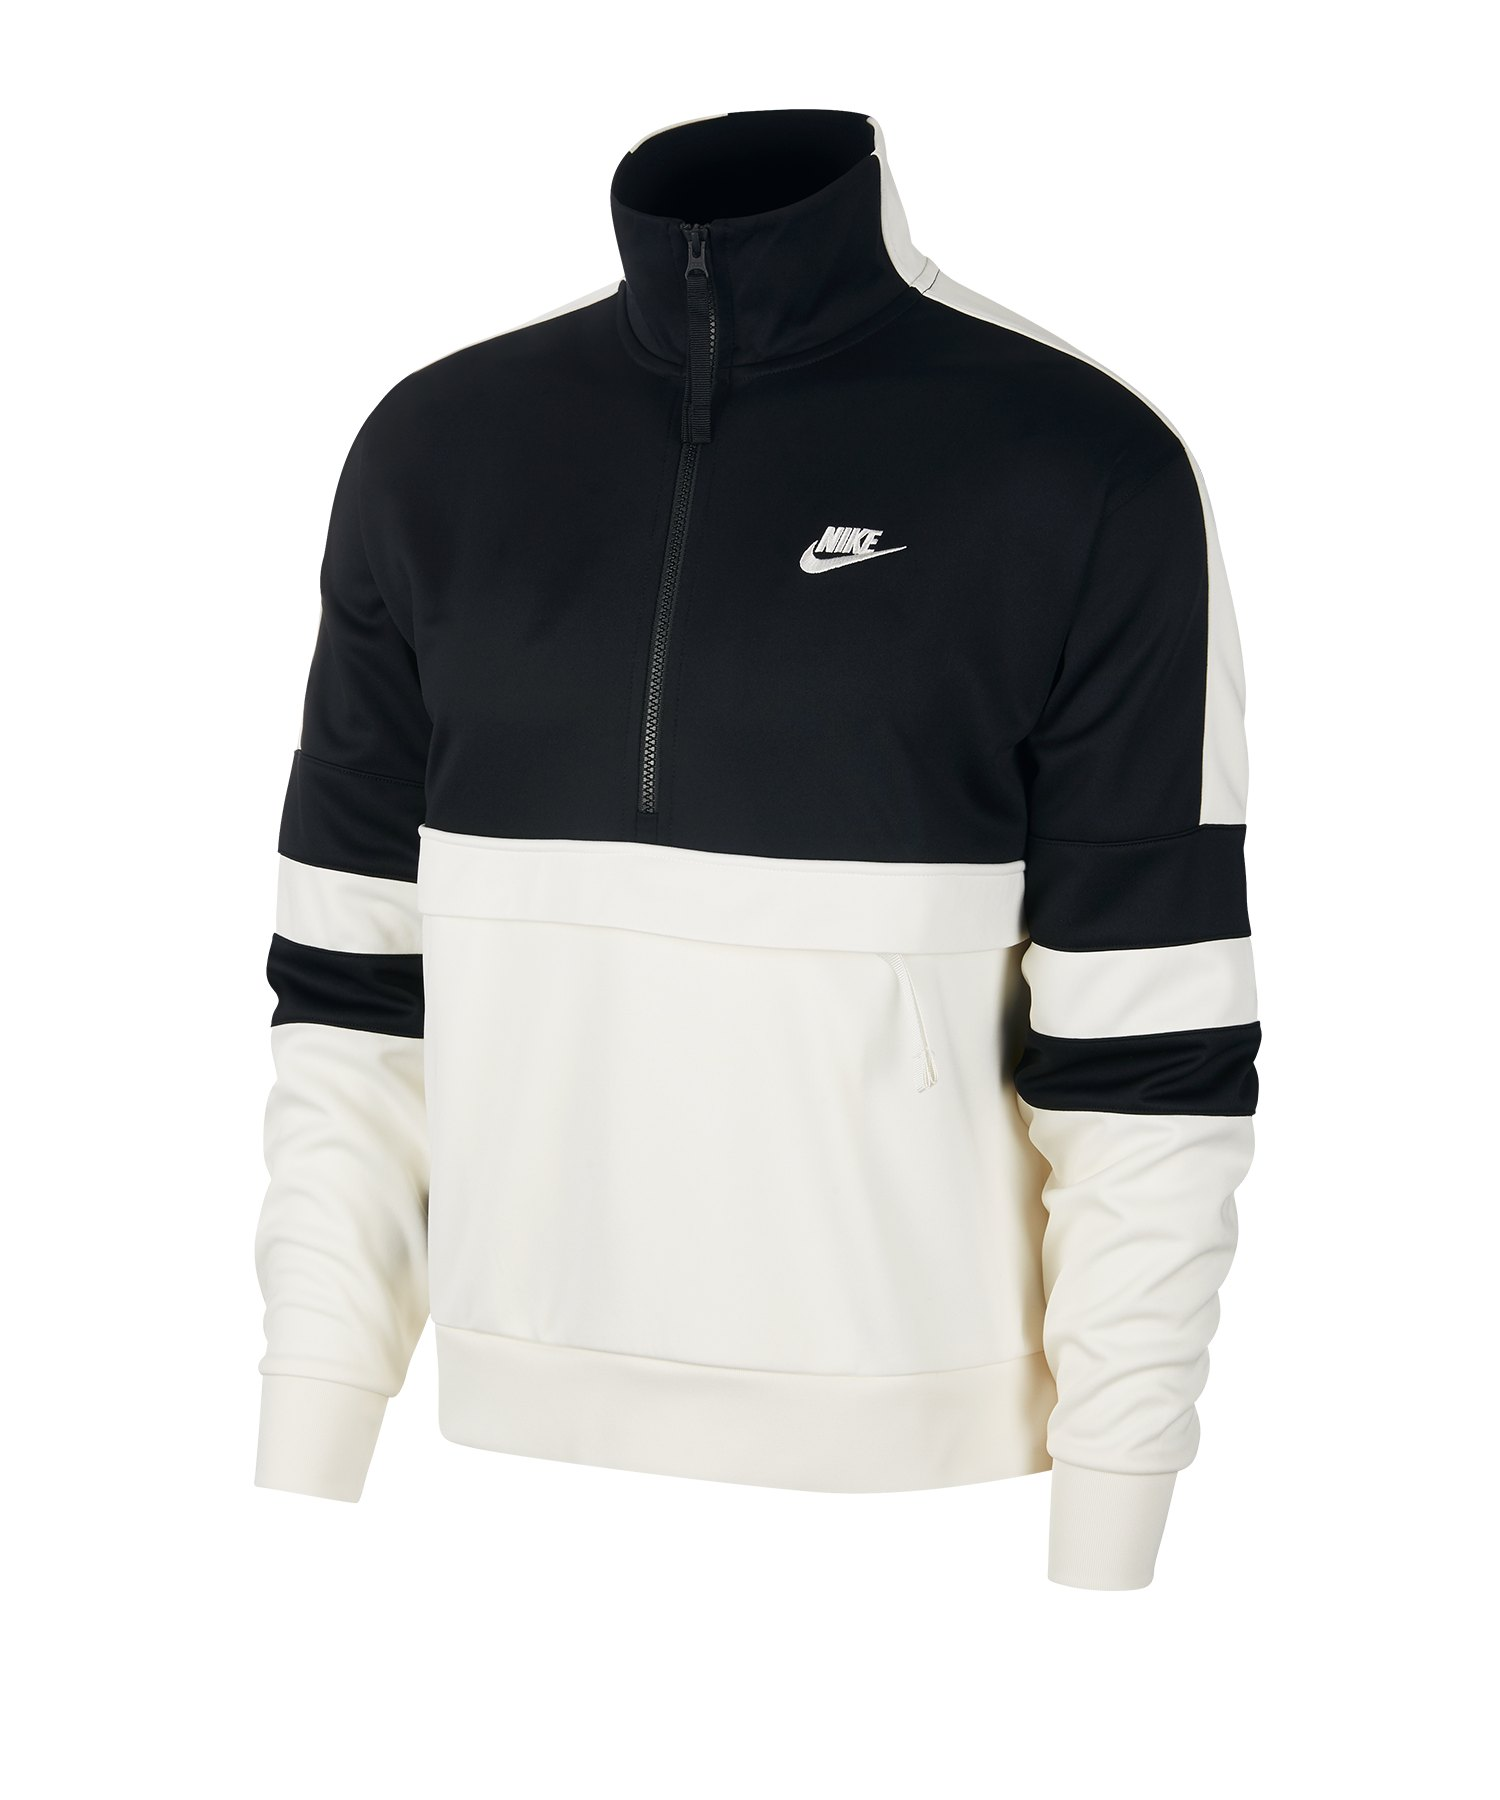 official photos best wholesaler buying cheap Nike